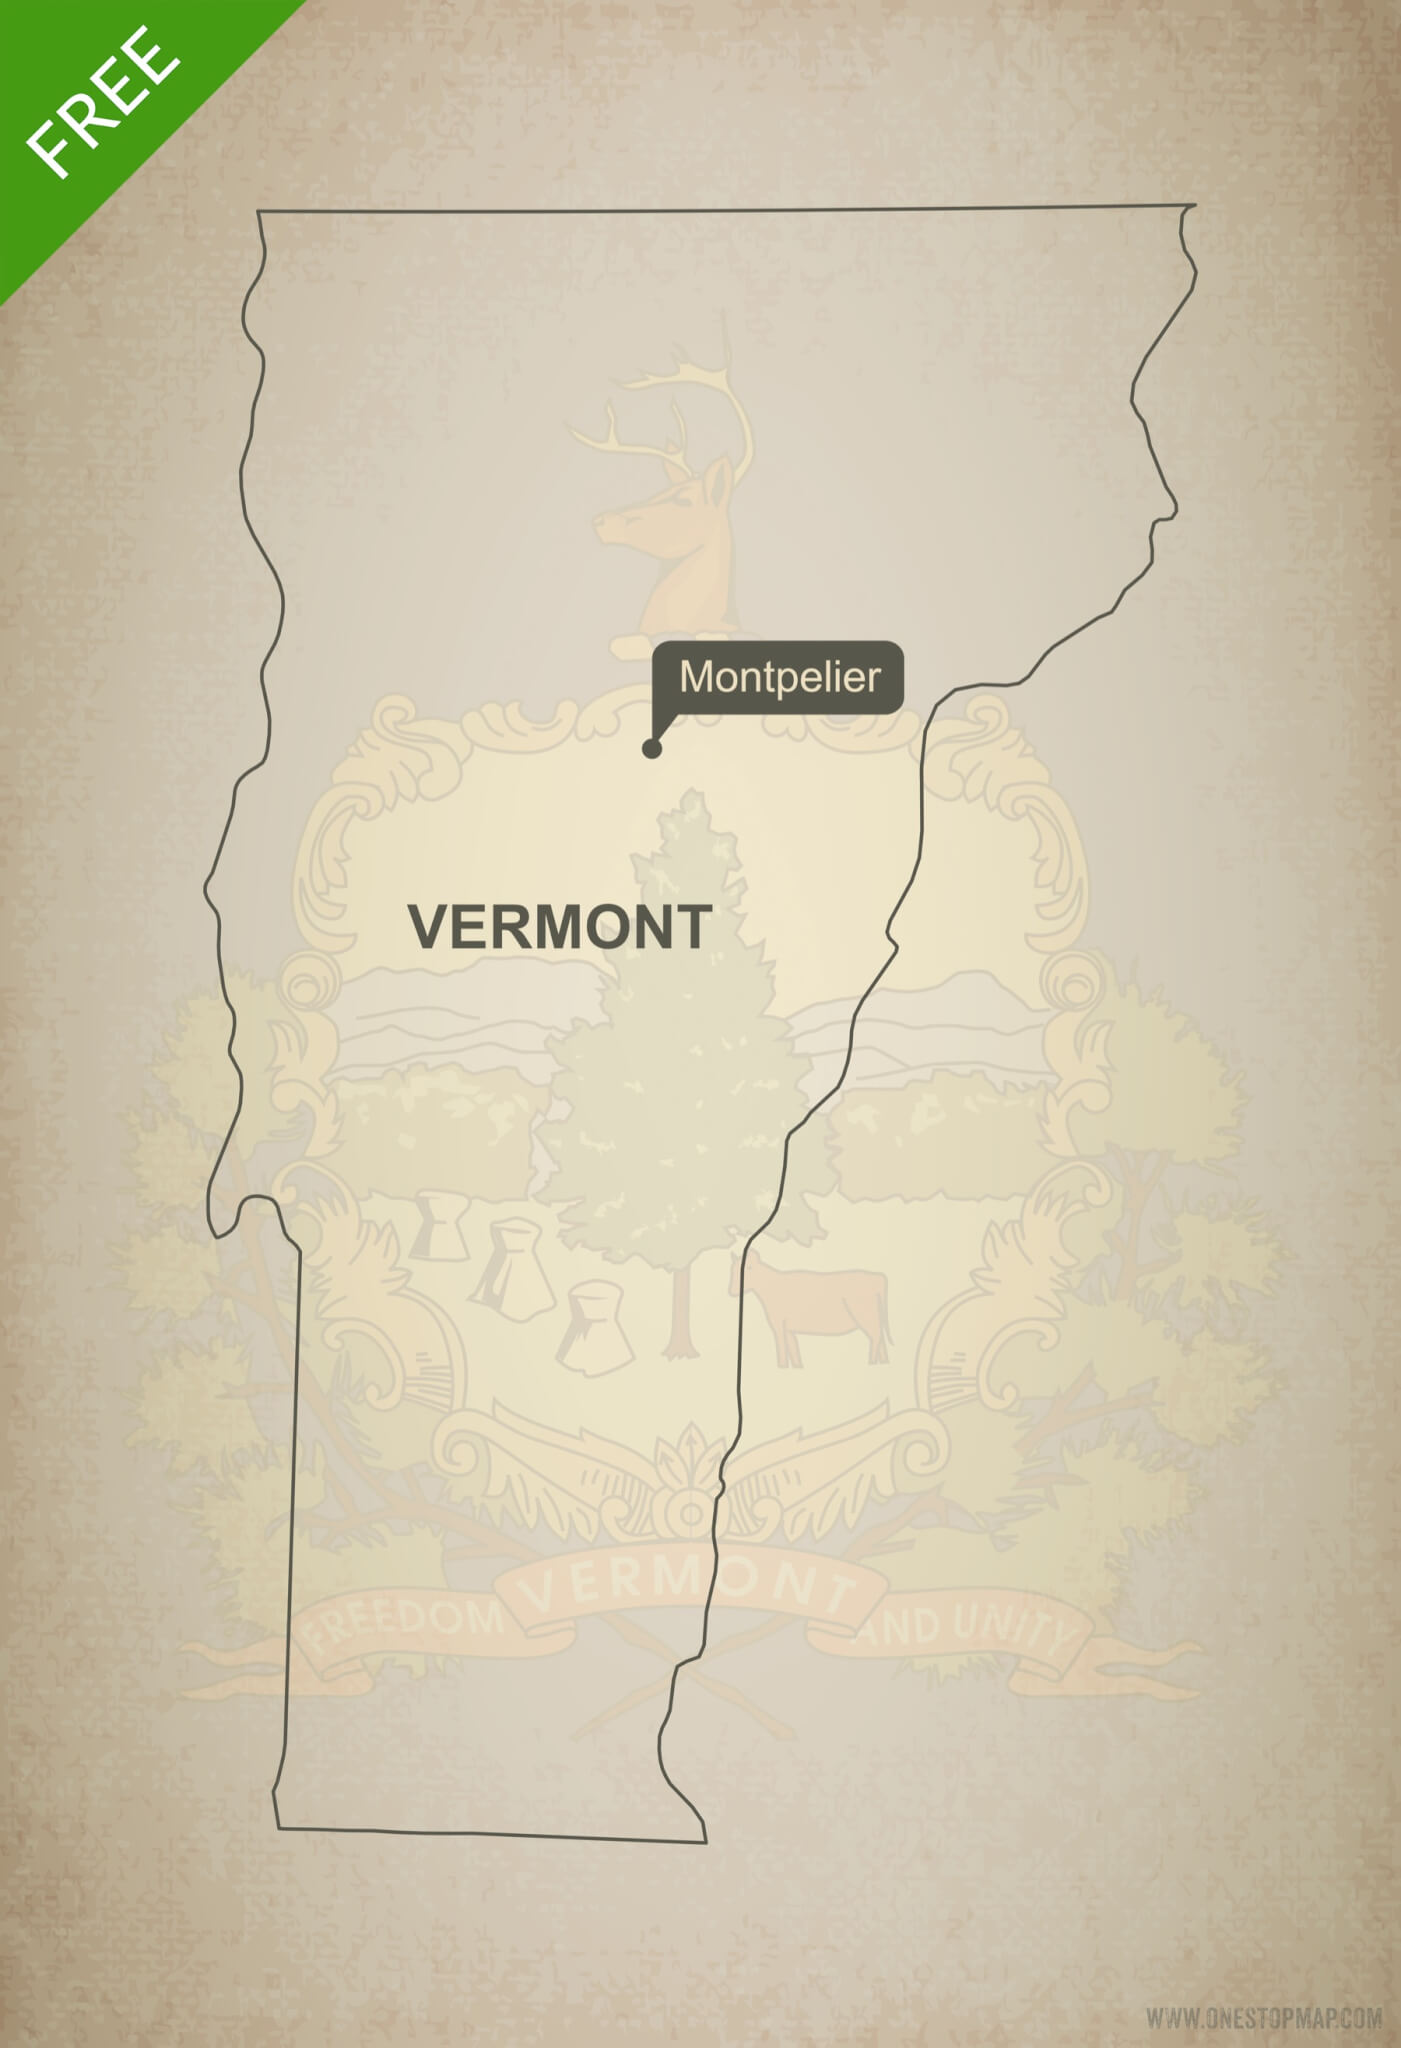 Free vector map of Vermont outline One Stop Map